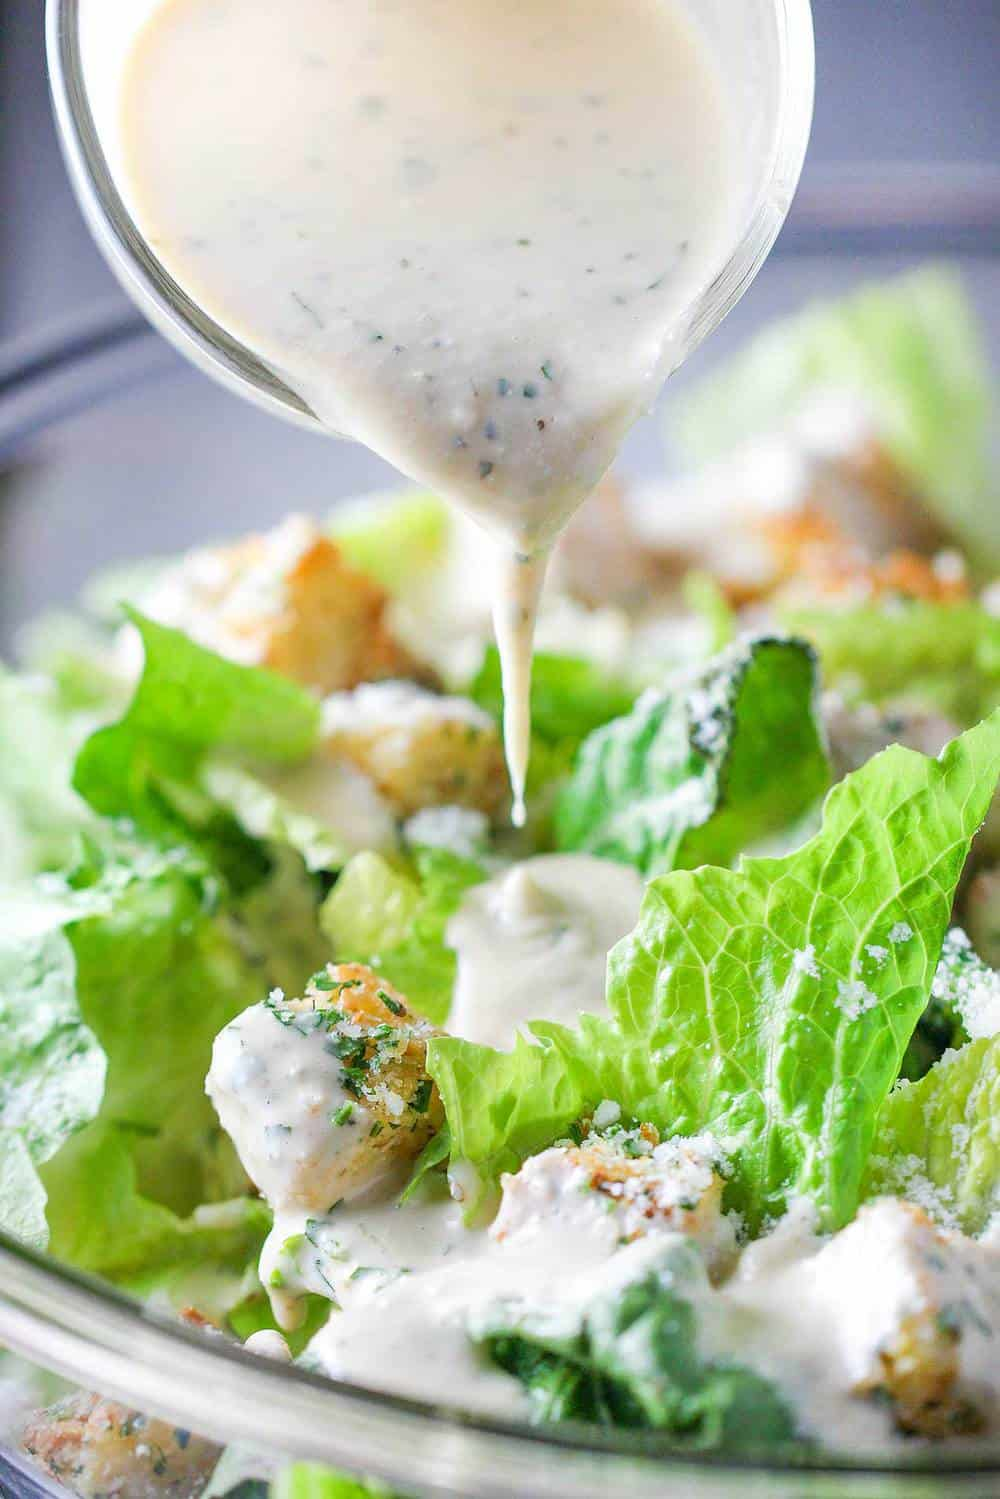 A small pitcher pouring dressing onto a classic Caesar salad.